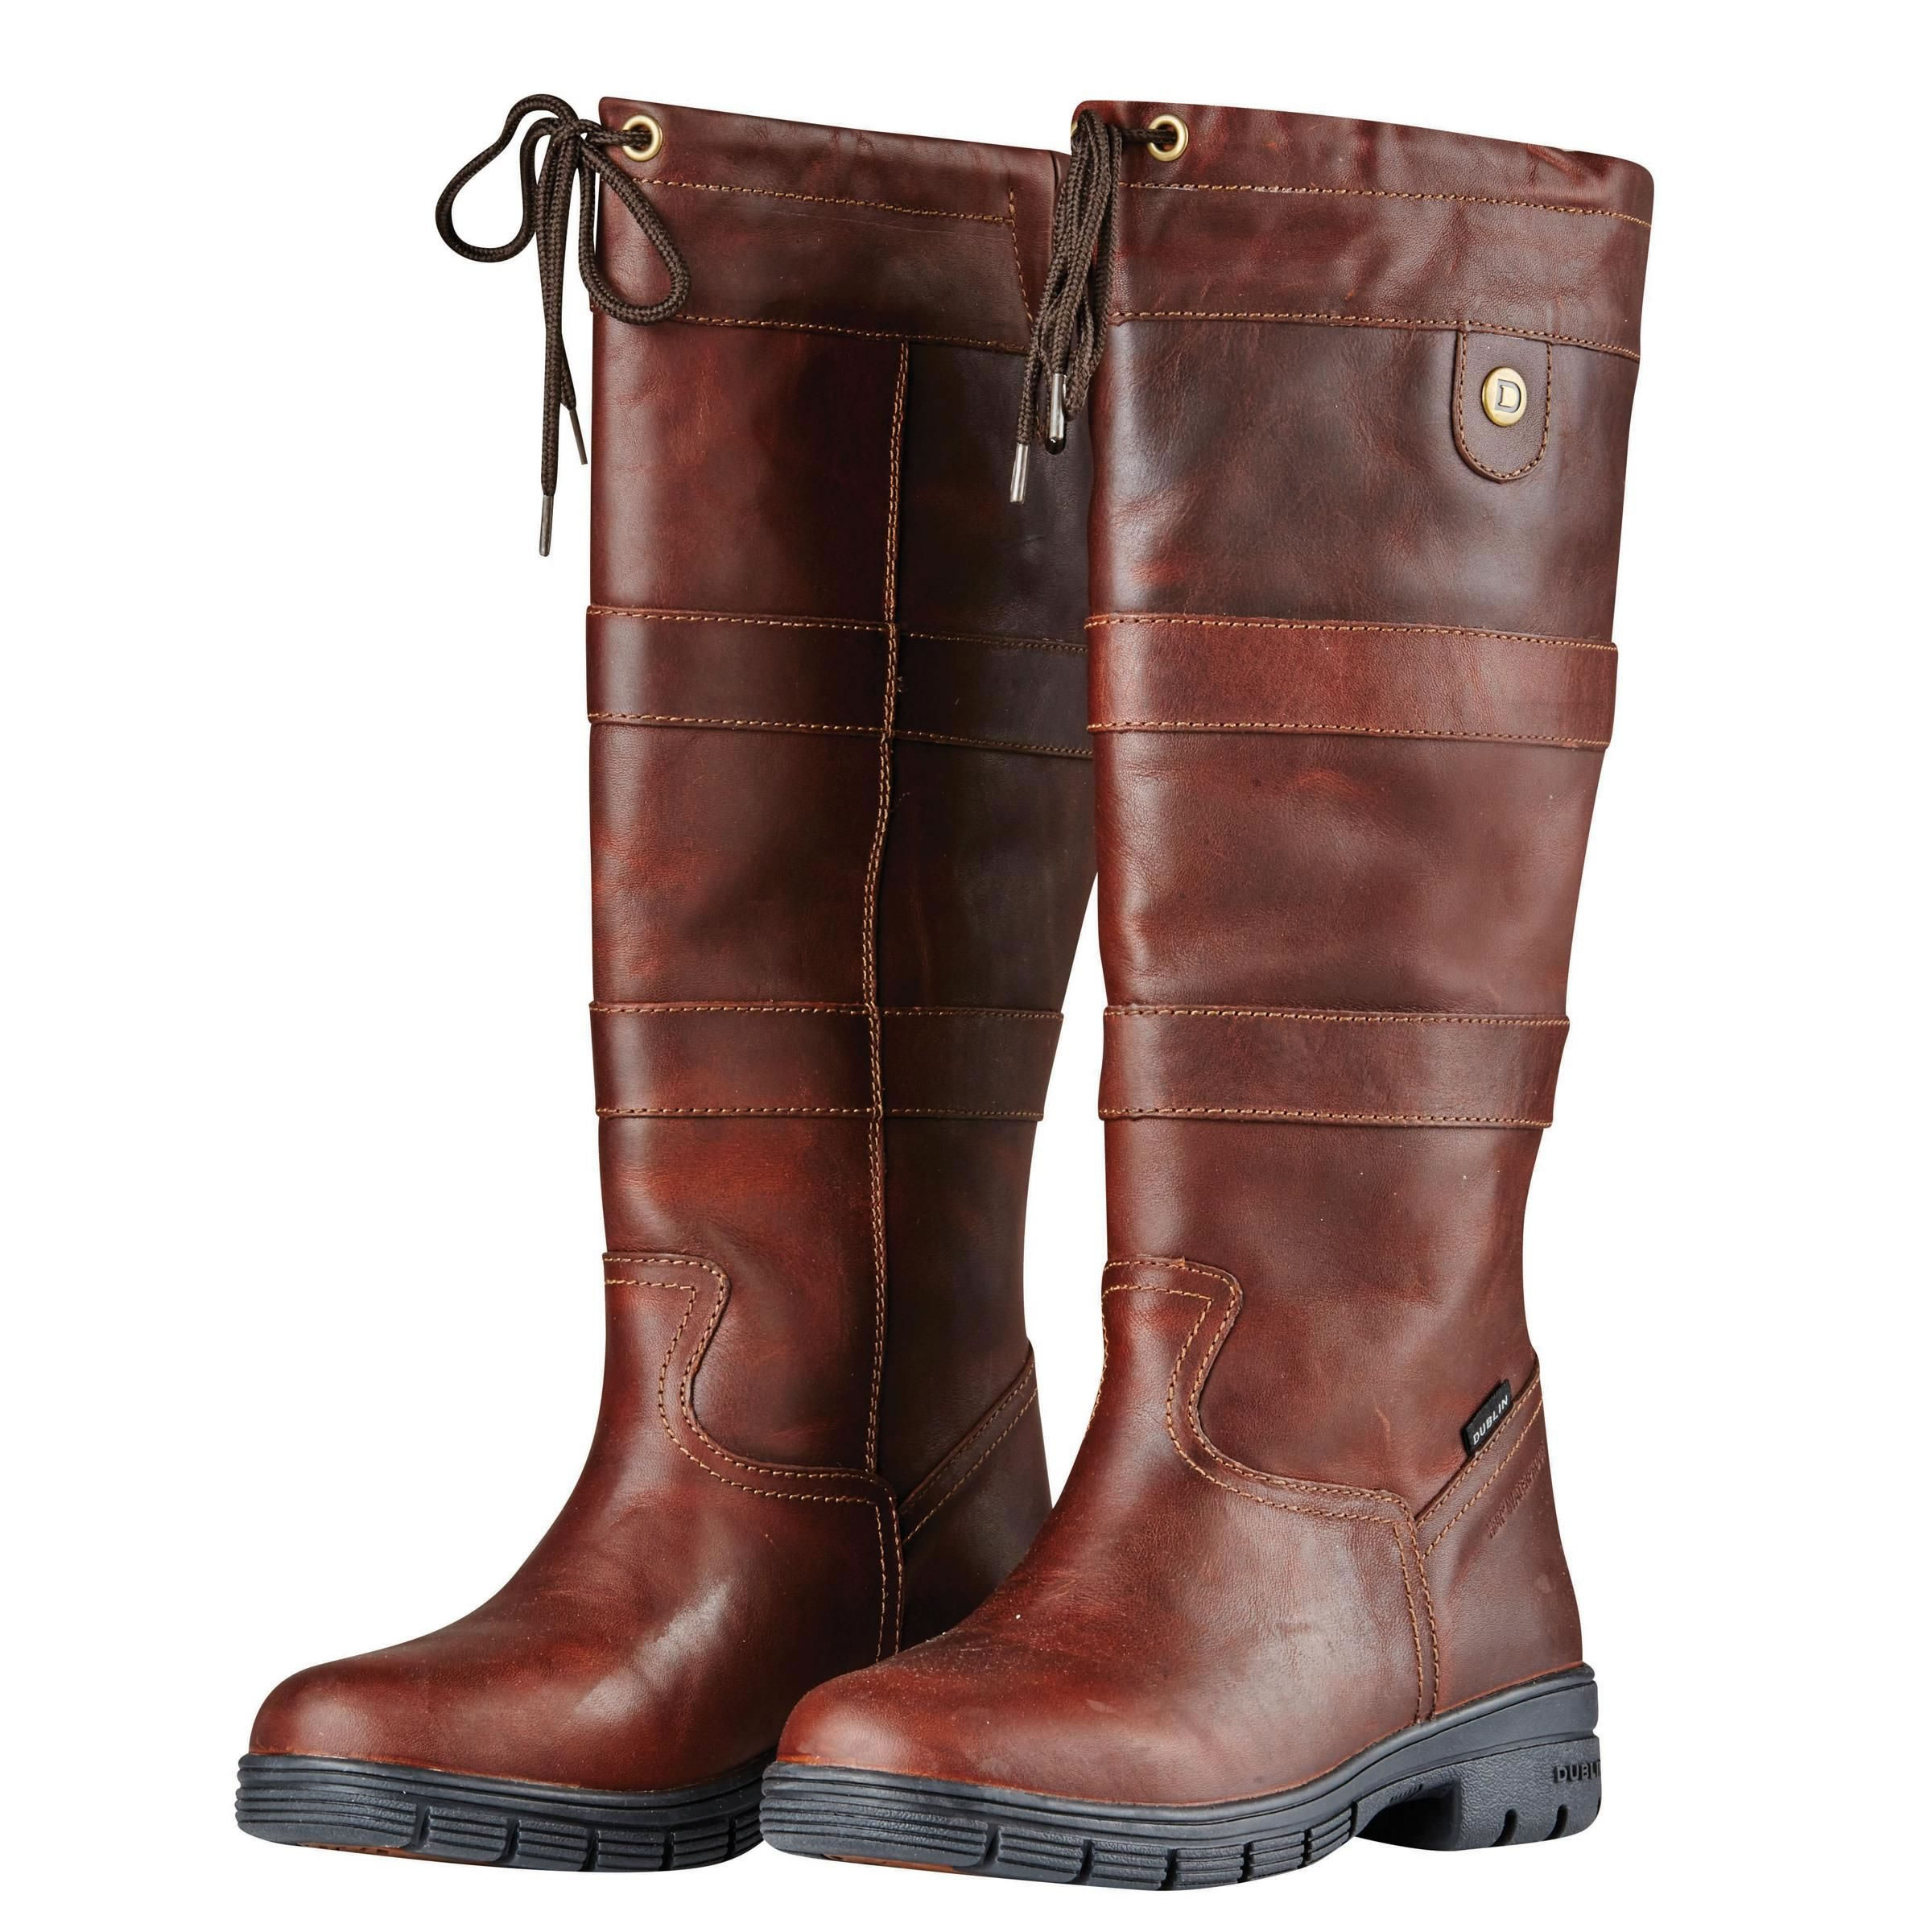 3c10067c9756 Dublin River Grain Boots - Red BrownFrom £169.99 (£141.66 +VAT)